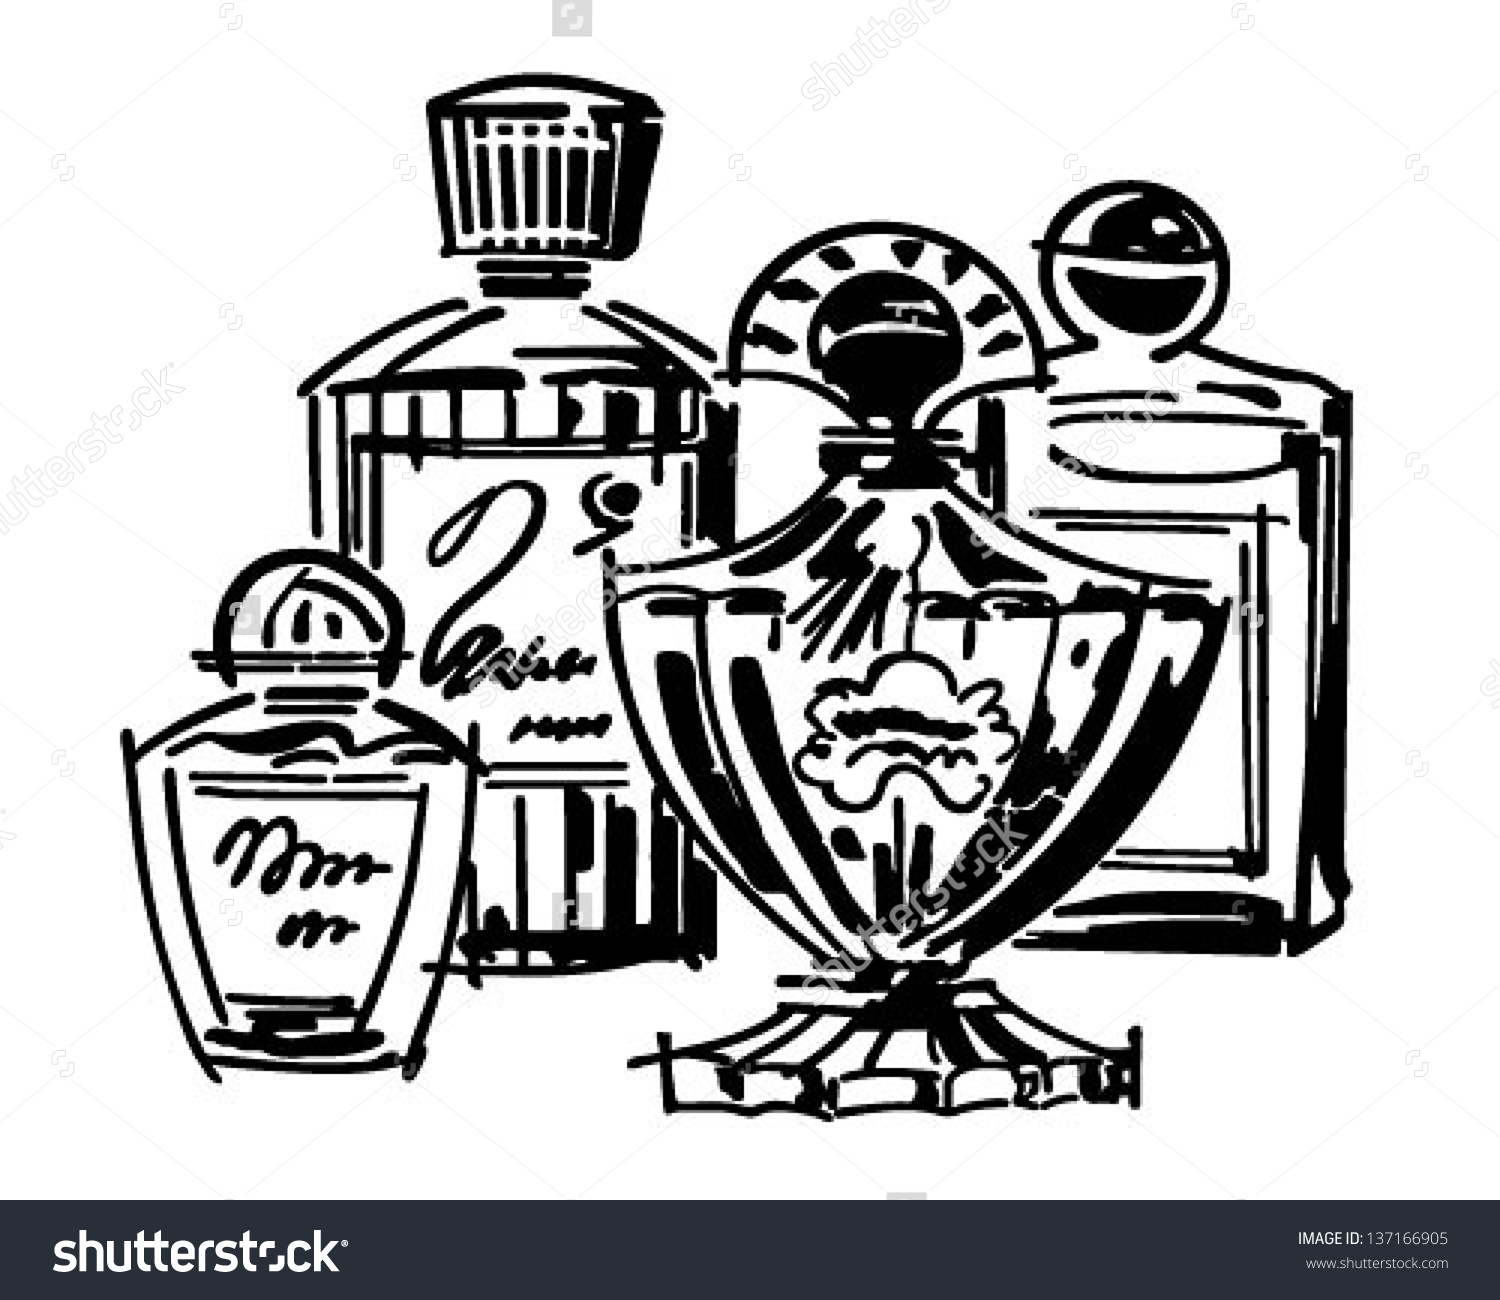 Perufme clipart cologne Download drawings Download #2 Perfume